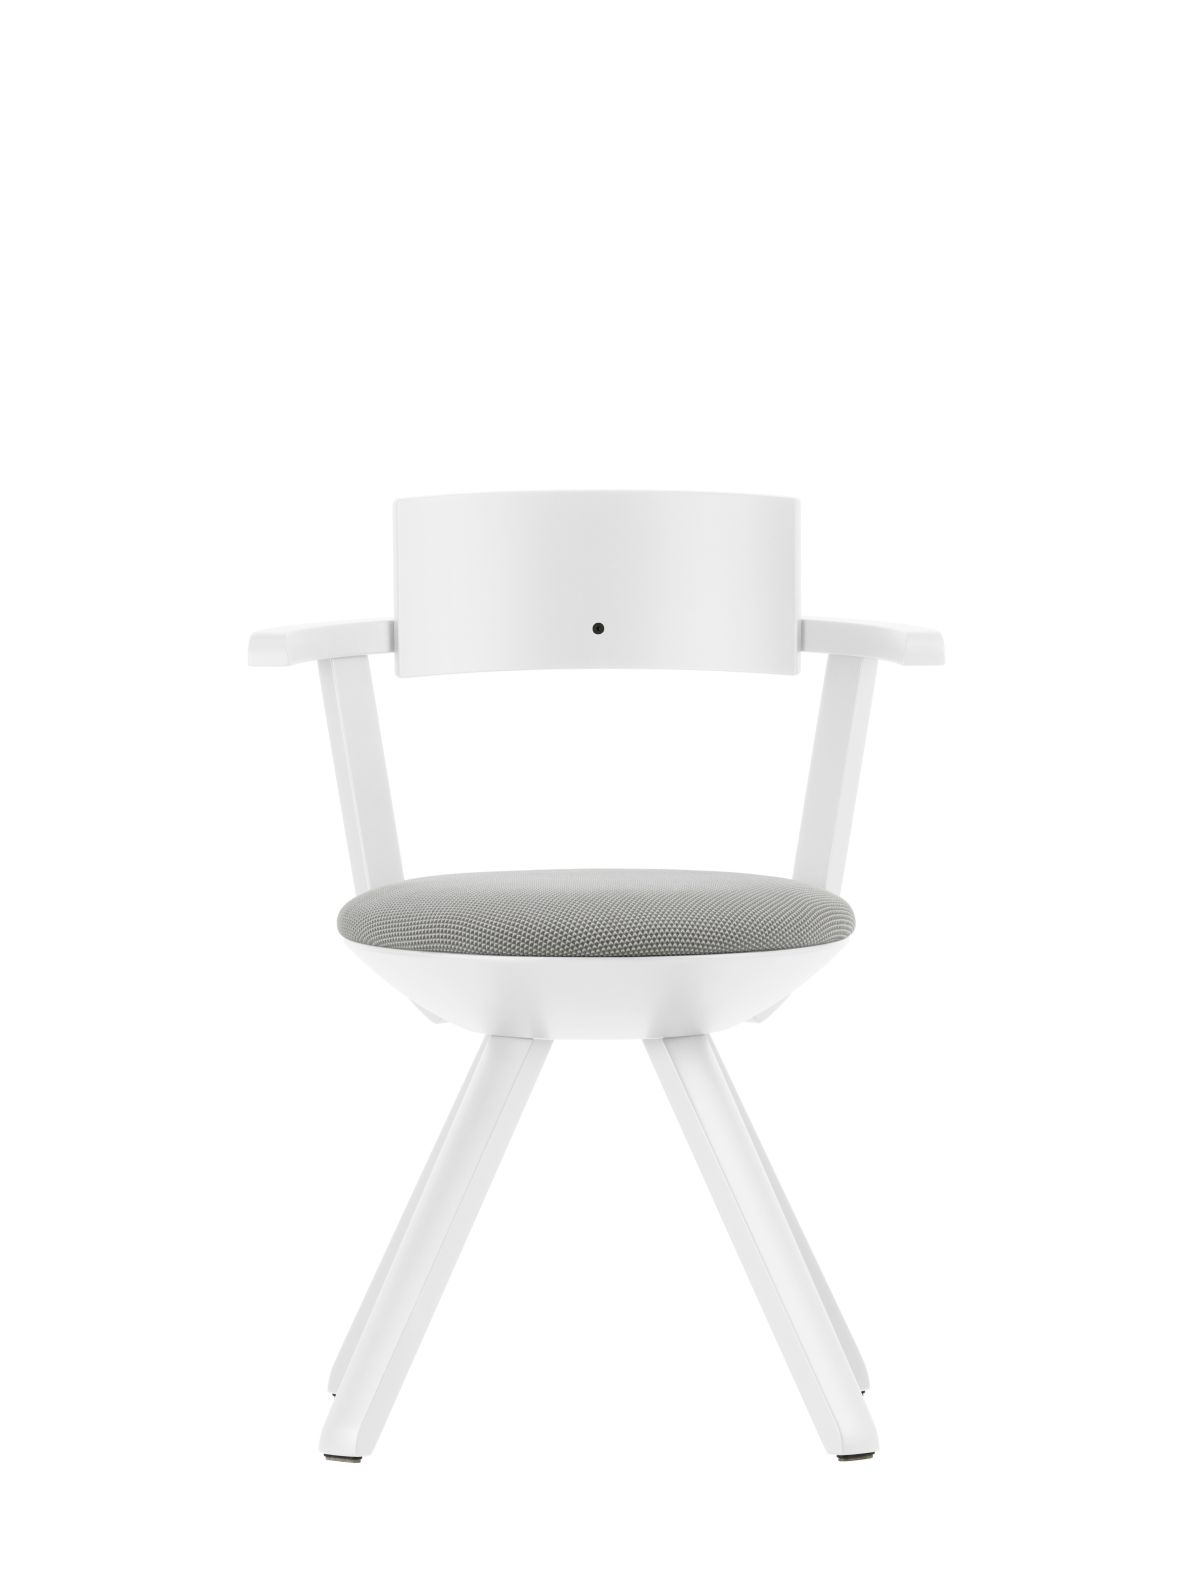 Rival Chair KG002 white lacquer light grey / cream 3d knit upholstery